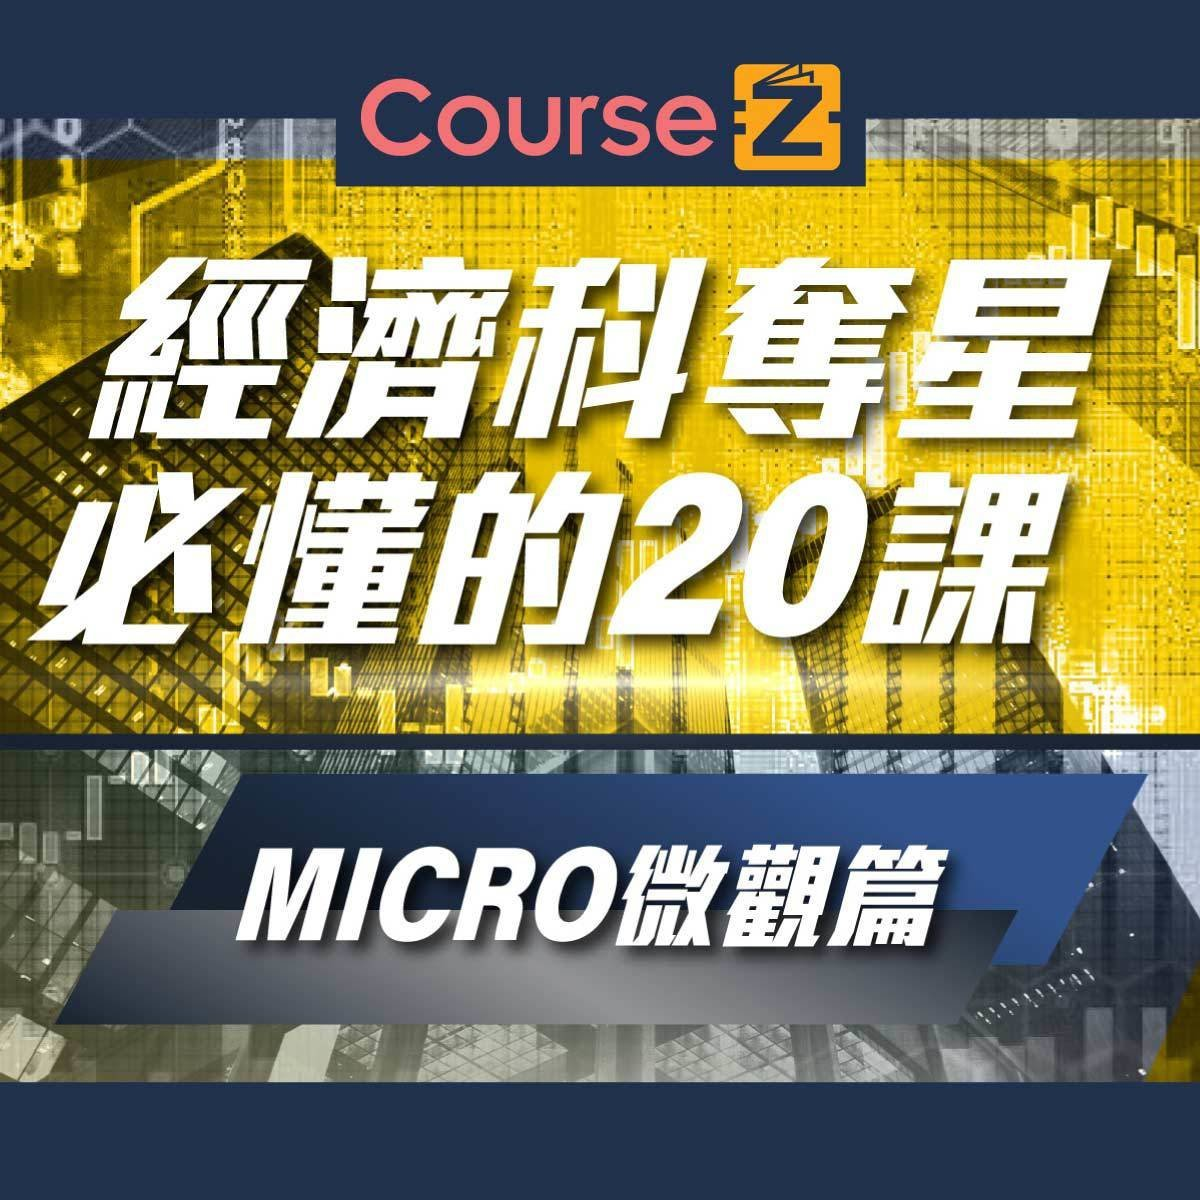 20 Lessons - ''20 Lessons You Should Take to Get 5** in DSE Economics (Micro)'' Online Course